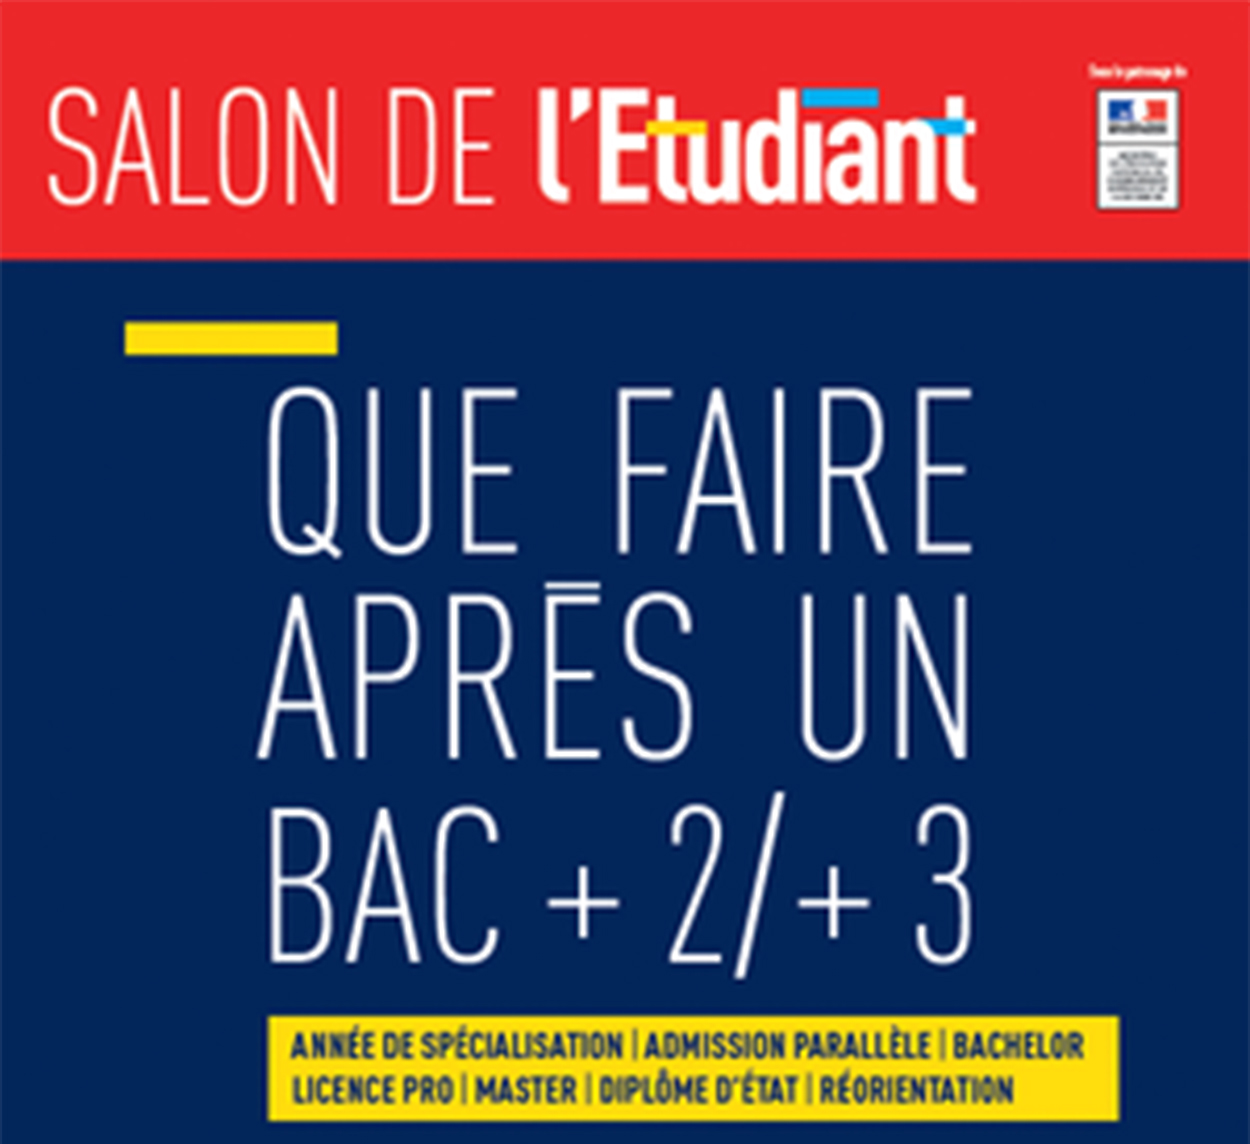 Que faire apr s un bac 2 3 samedi 25 f vrier 2017 for Salon de l etudiant nice